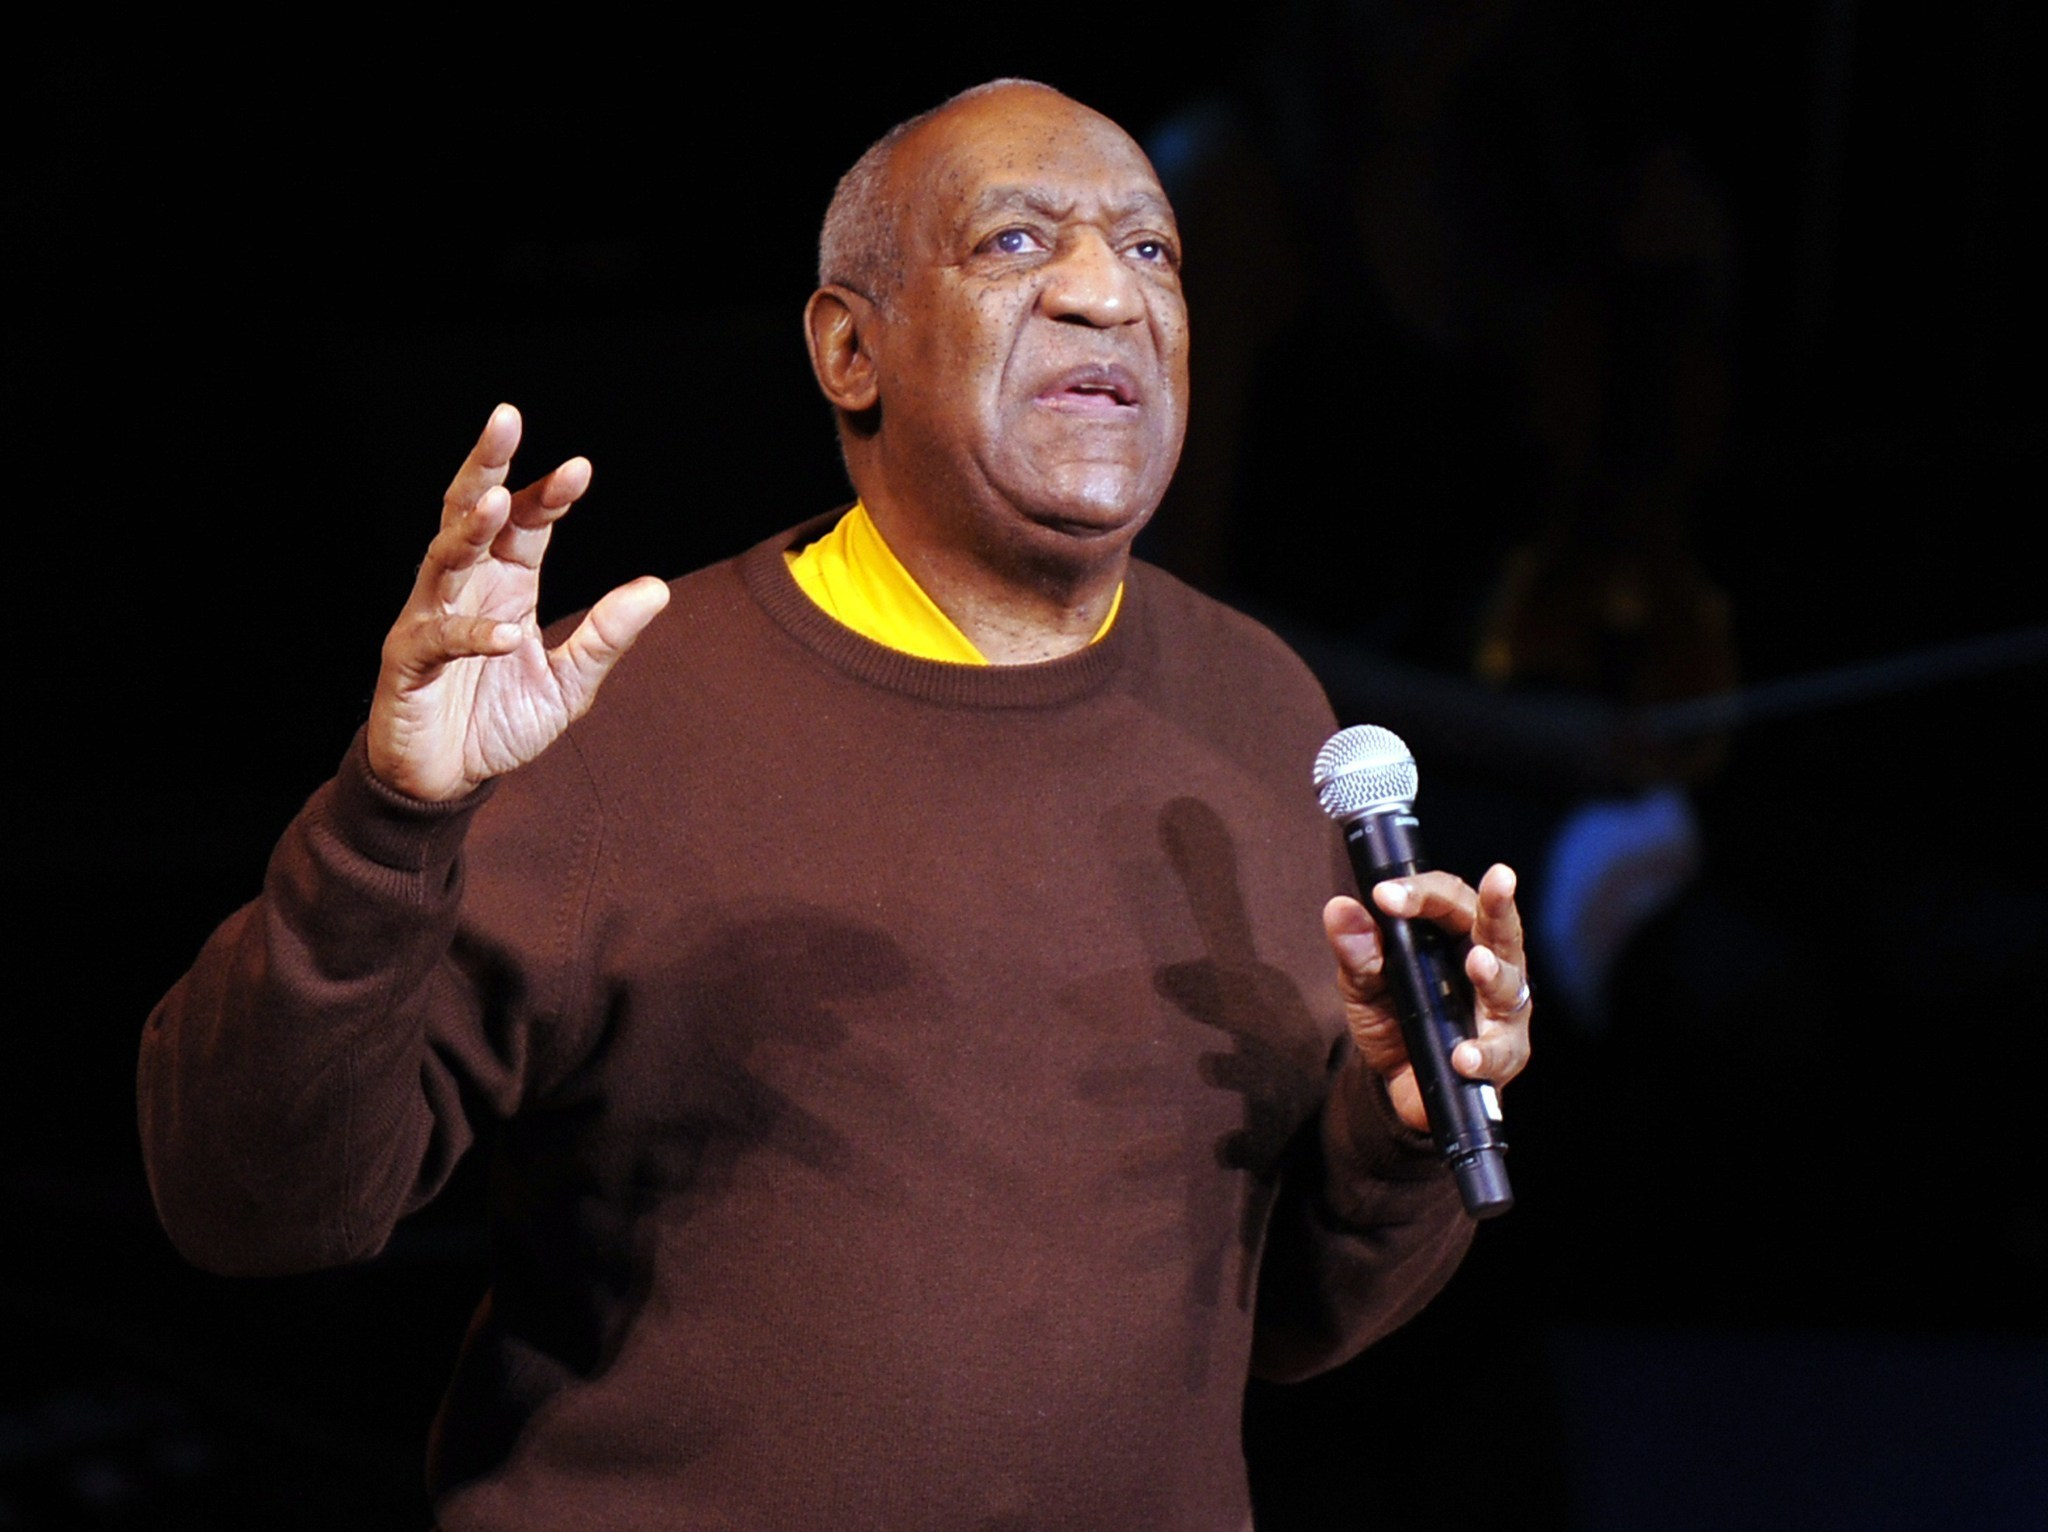 analysis of bill cosby s pound cake speech The comedian gave a speech at the naacp in 2004 that may have  here's the  infamous 'pound cake' speech that got bill cosby called out for.